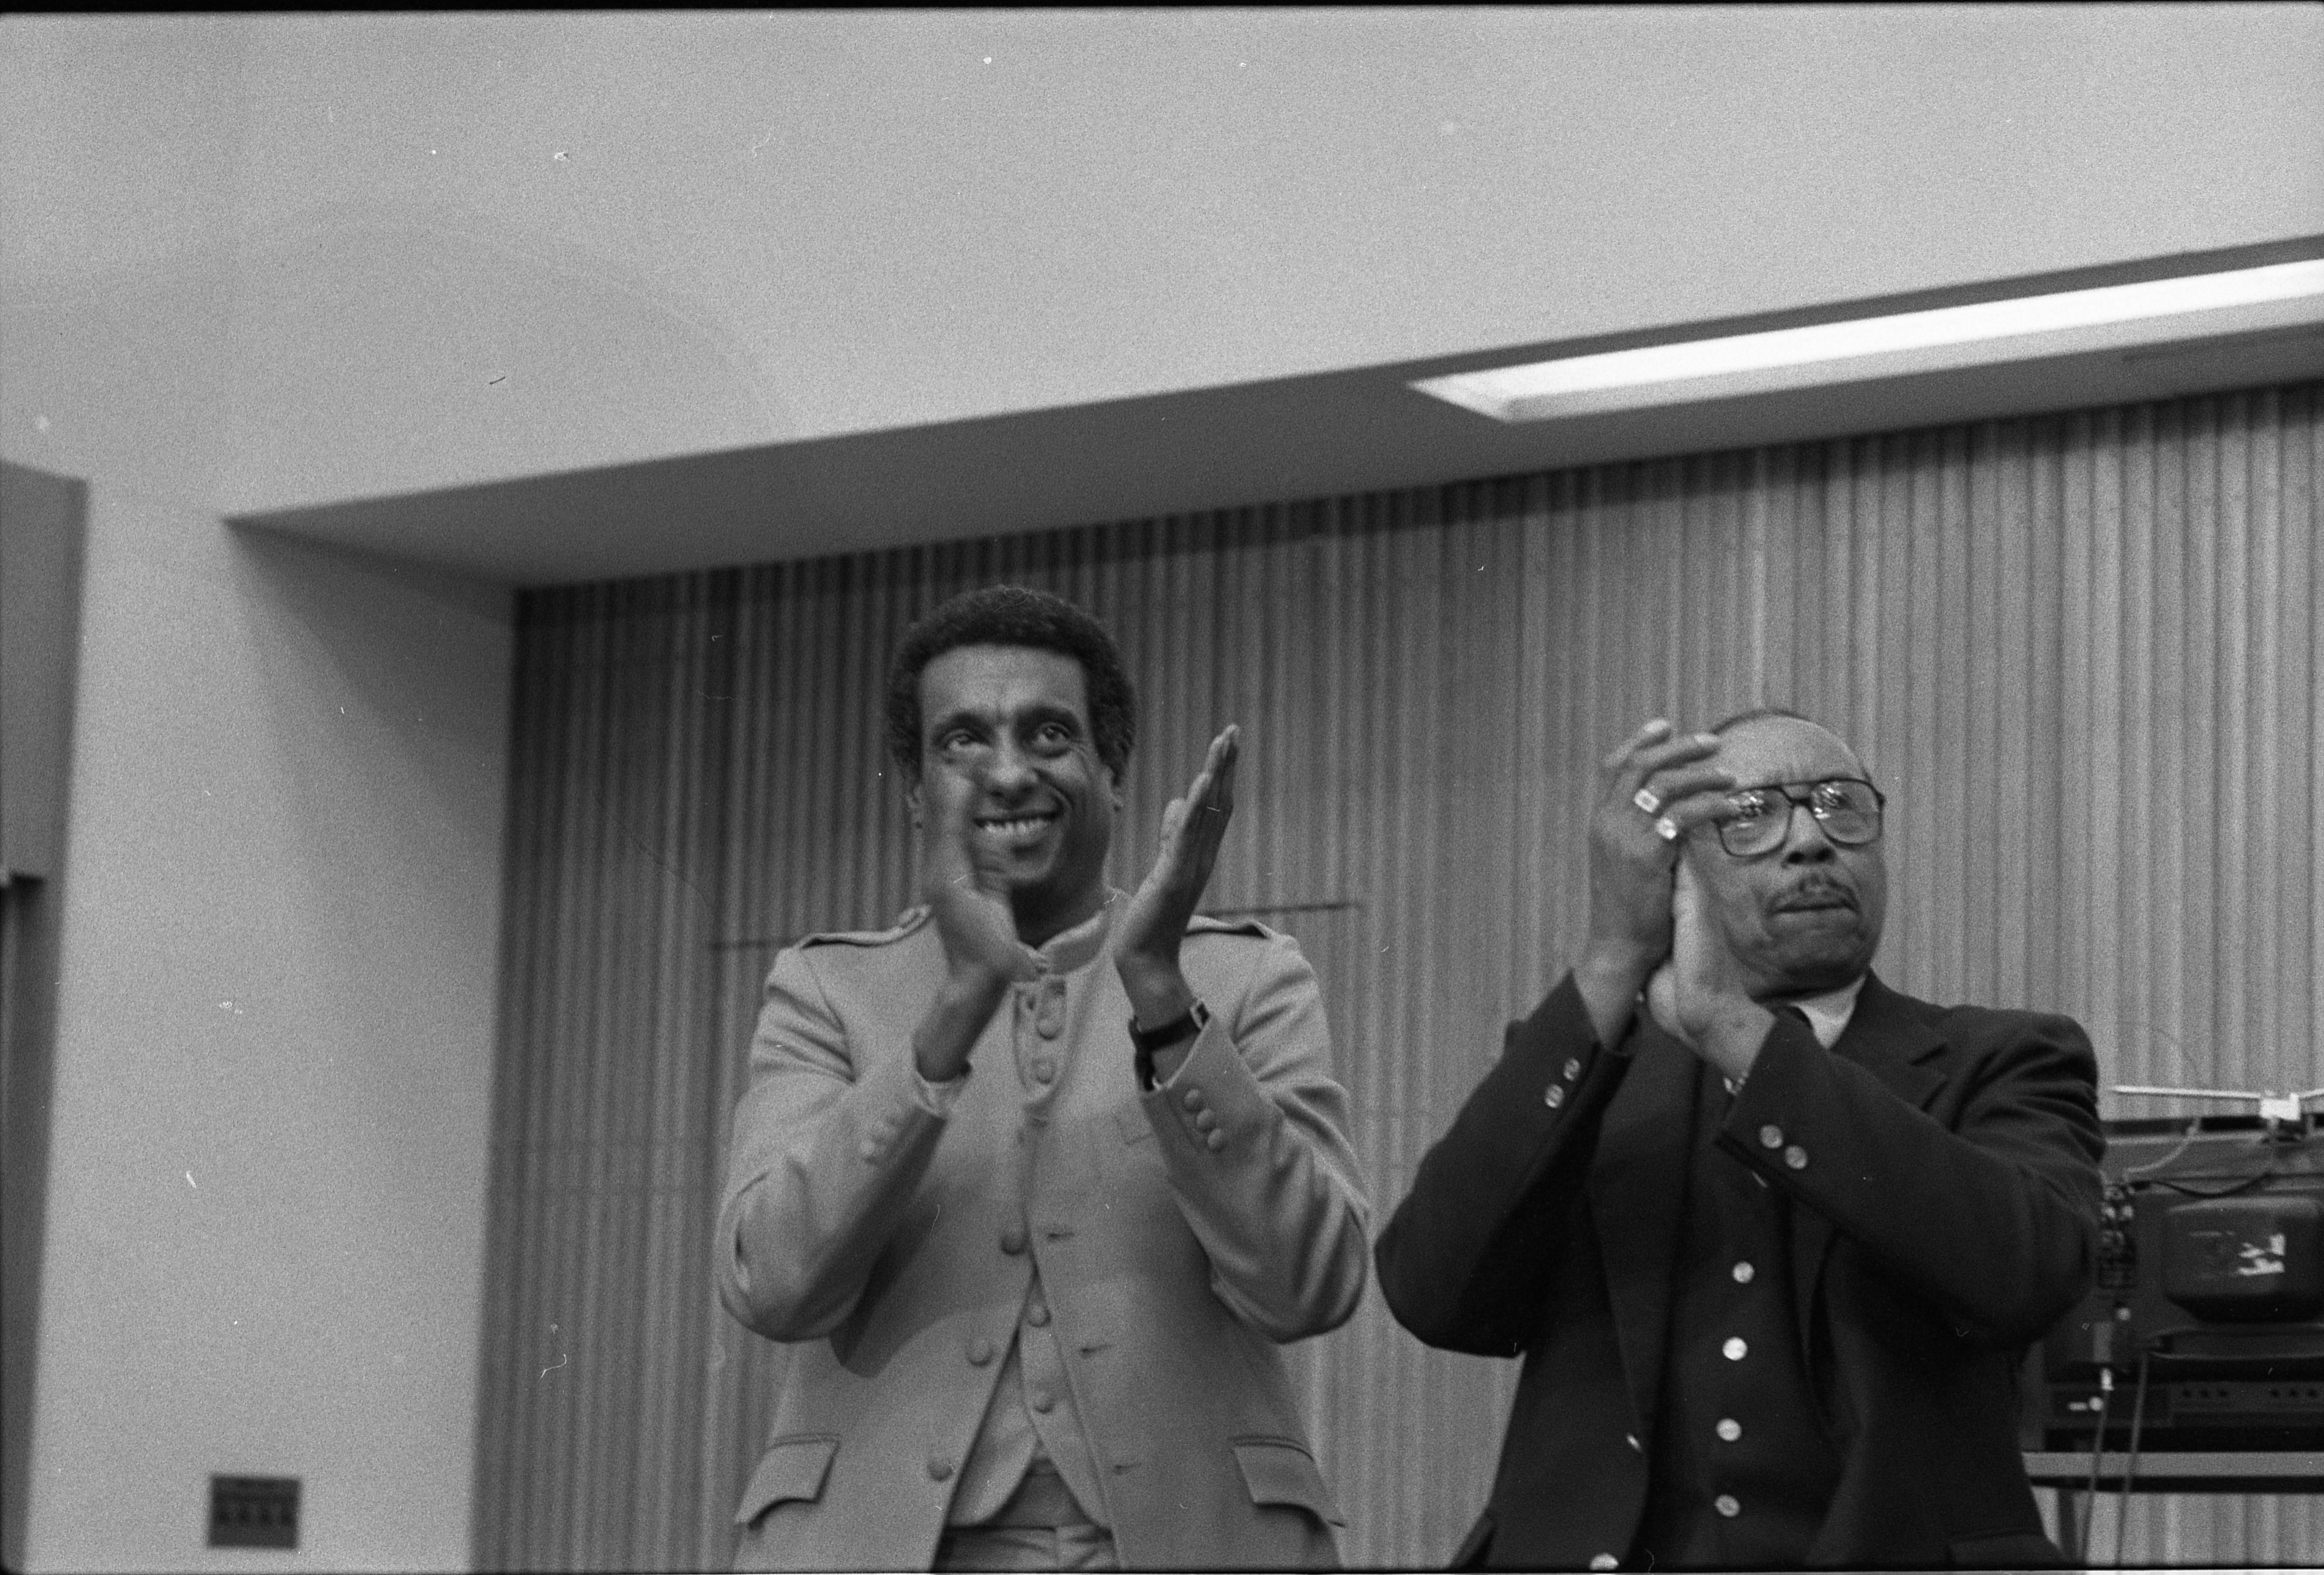 Stokely Carmichael & Floyd McKissick At Hale Auditorium For Conference Honoring Black History Month, February 13, 1983 image